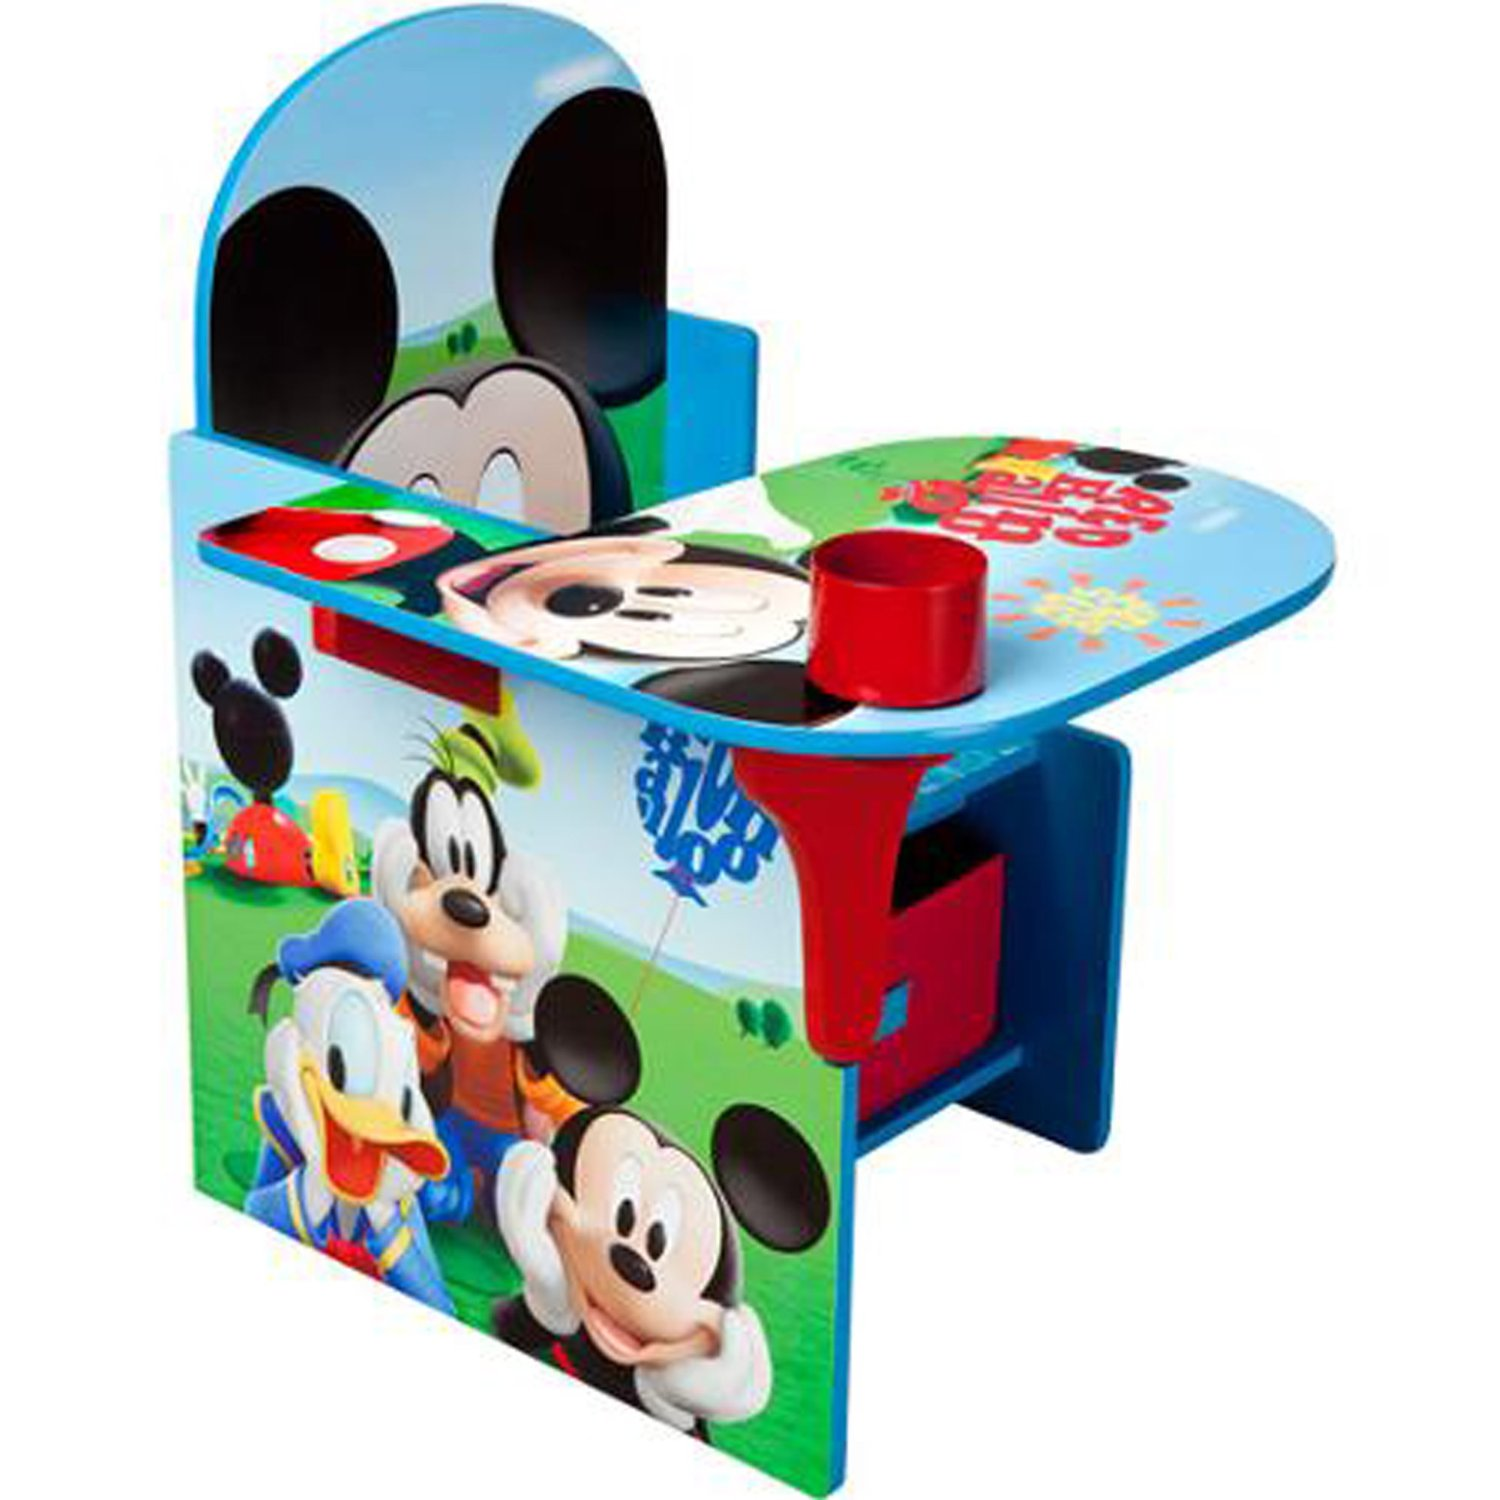 Disney Chair Desk With Storage Bin Mickey Mouse Characters Desk Set Fabric Storage Bin Extra Storage Table Desk Chair MDF Construction Assembly Required Sits Low Children Furniture (Pack of Two)